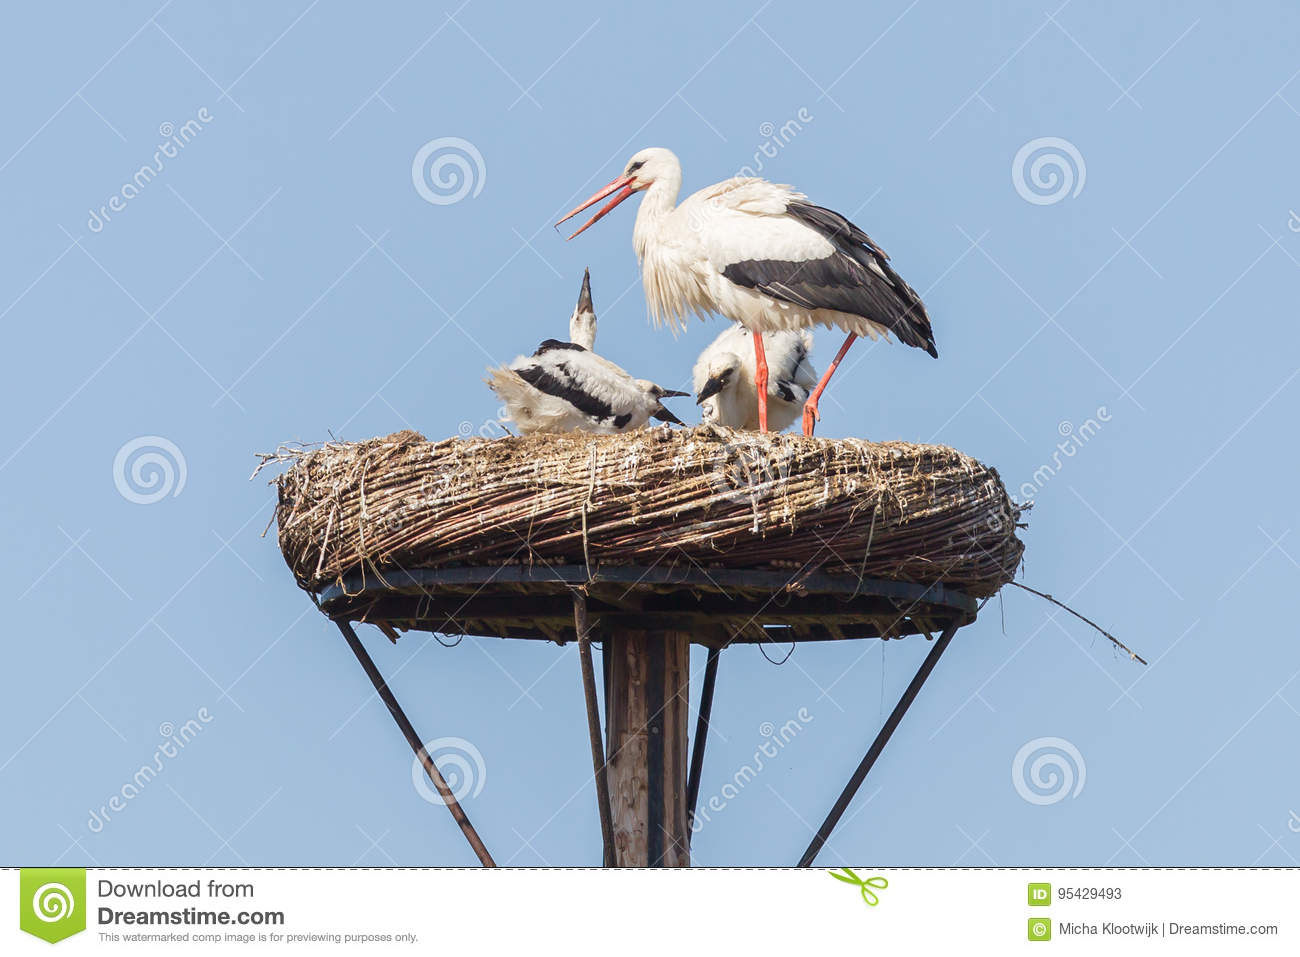 White stork sitting on a nest